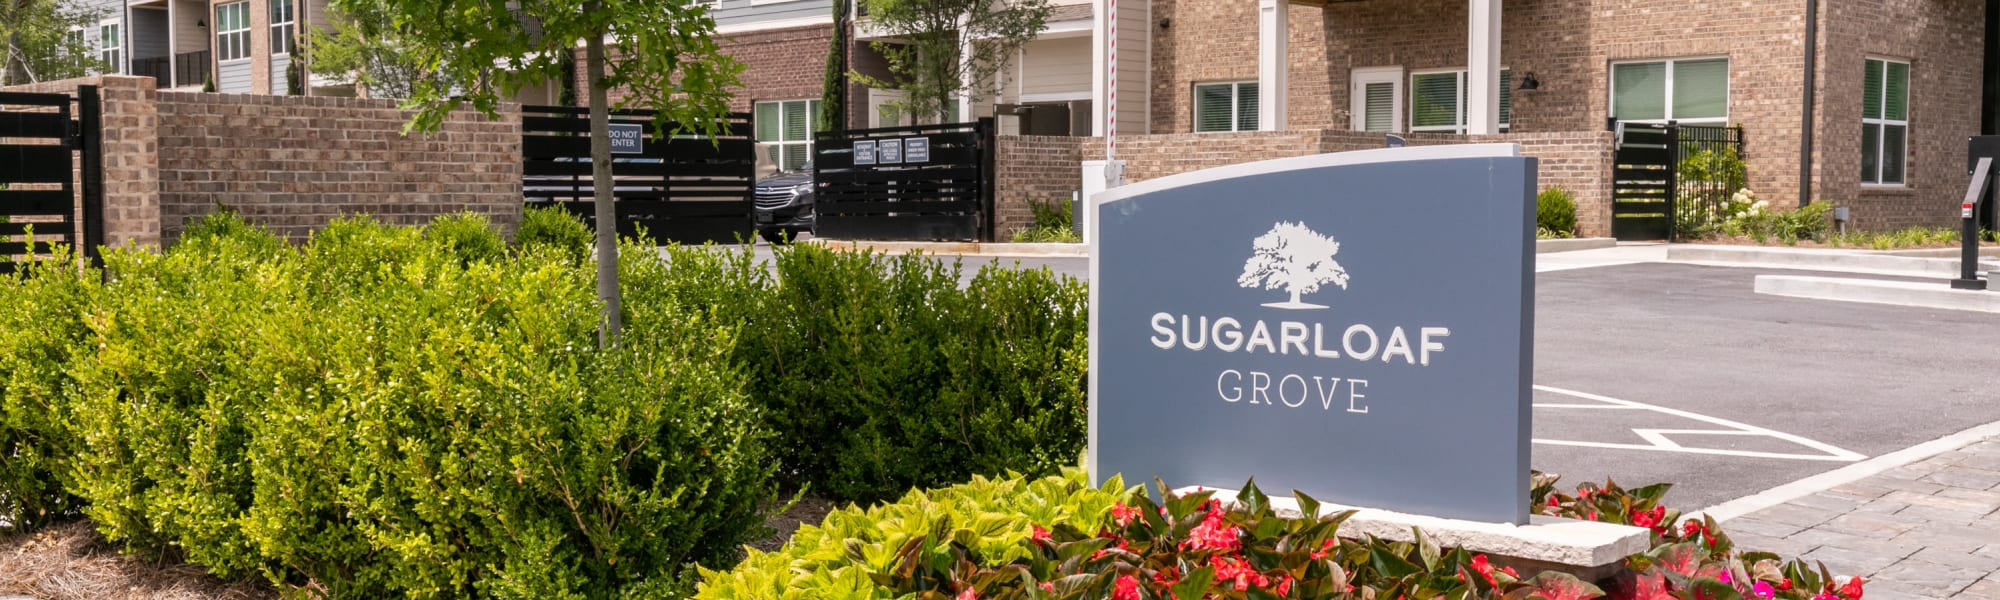 Amenities at Sugarloaf Grove in Lawrenceville, Georgia